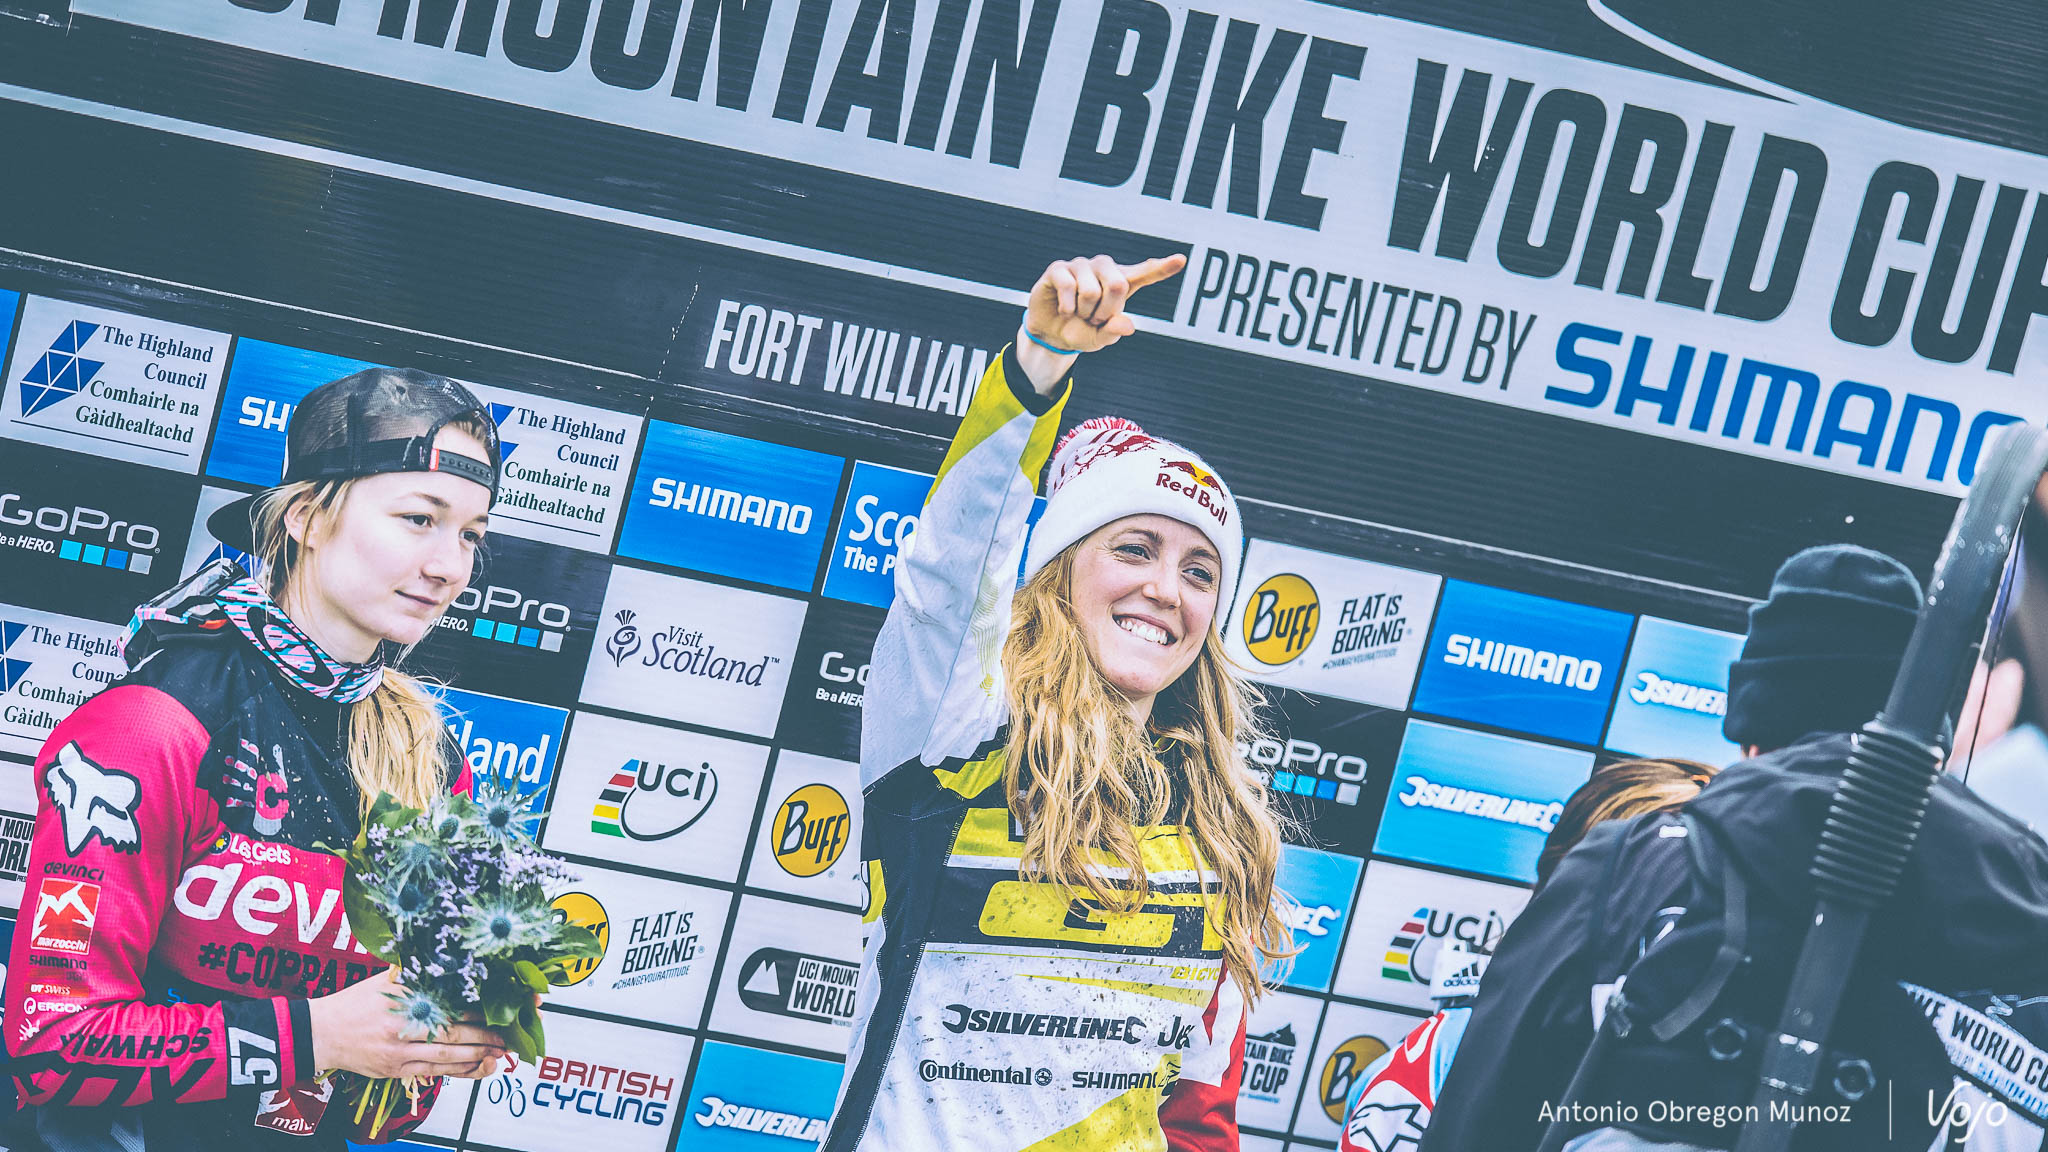 Fort_William_UCI_World_Cup_DH_2015_(finales_Homme_Femme)_Copyright_Antonio_Obregon_VojoMag-2